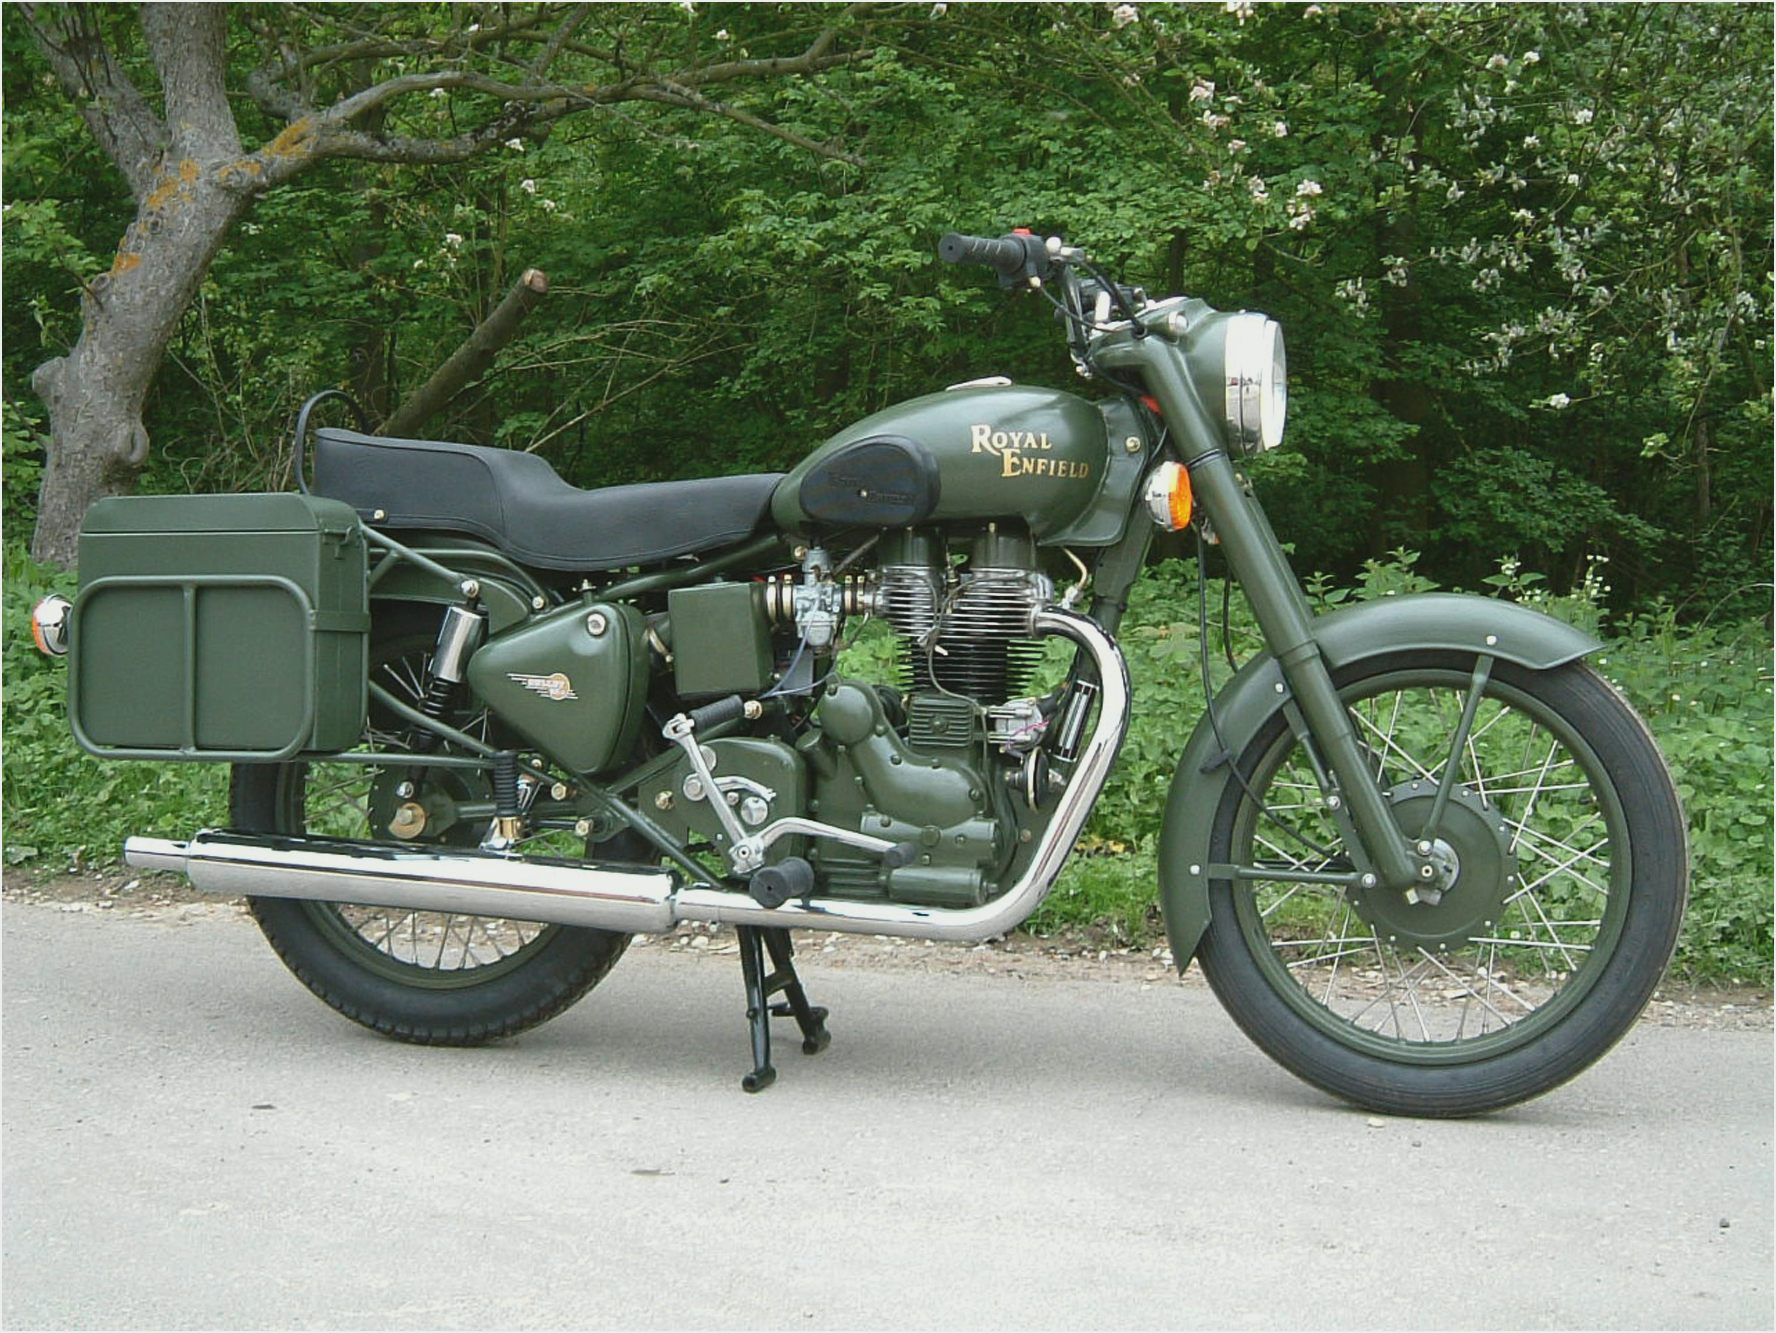 Royal Enfield Bullet 350 Army 2001 images #123111